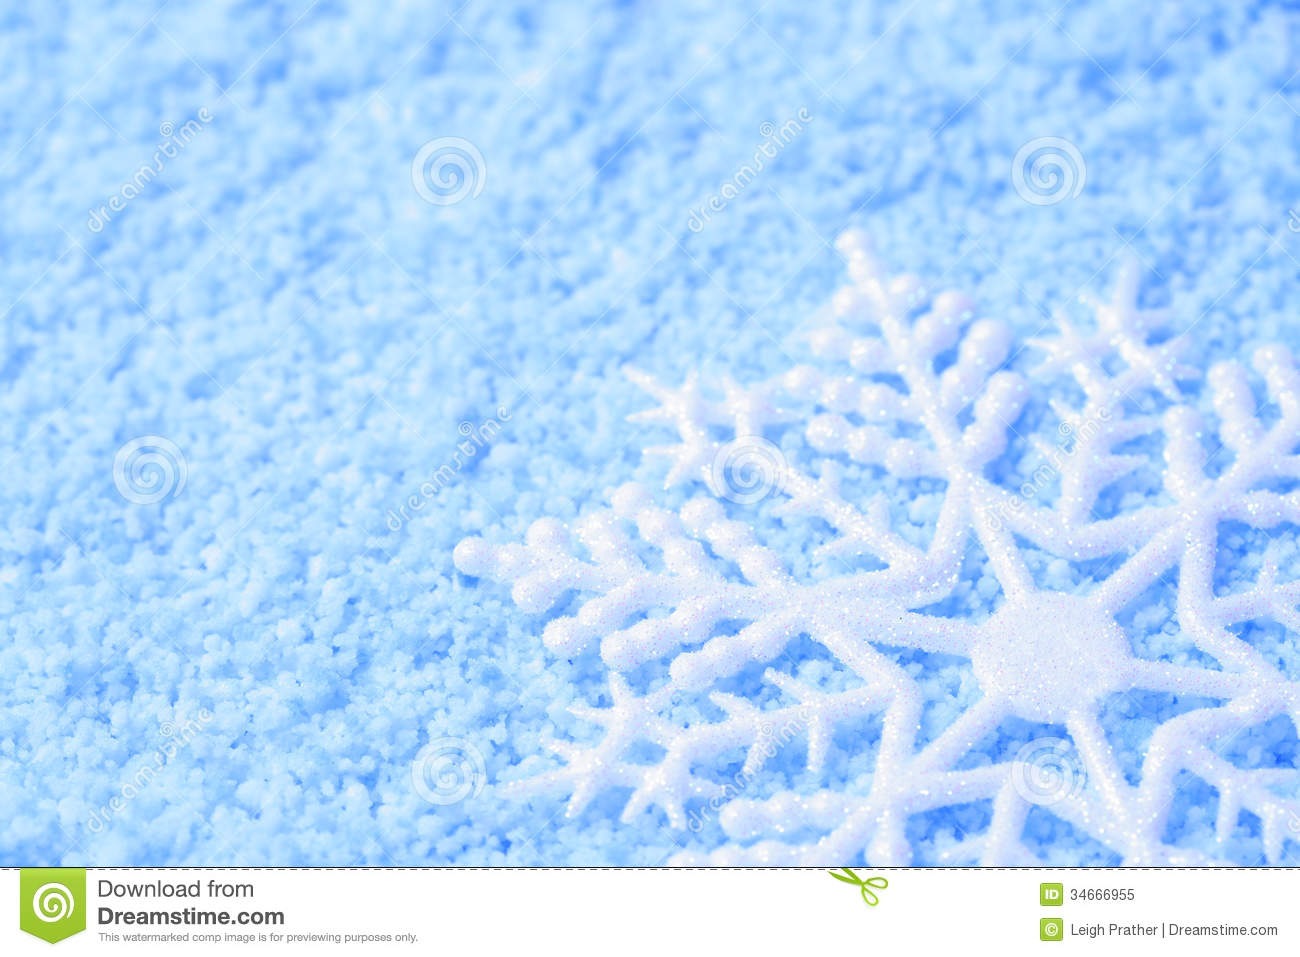 Wallpaper 3d Animation Free Download Snowflake In Snow Royalty Free Stock Photo Image 34666955